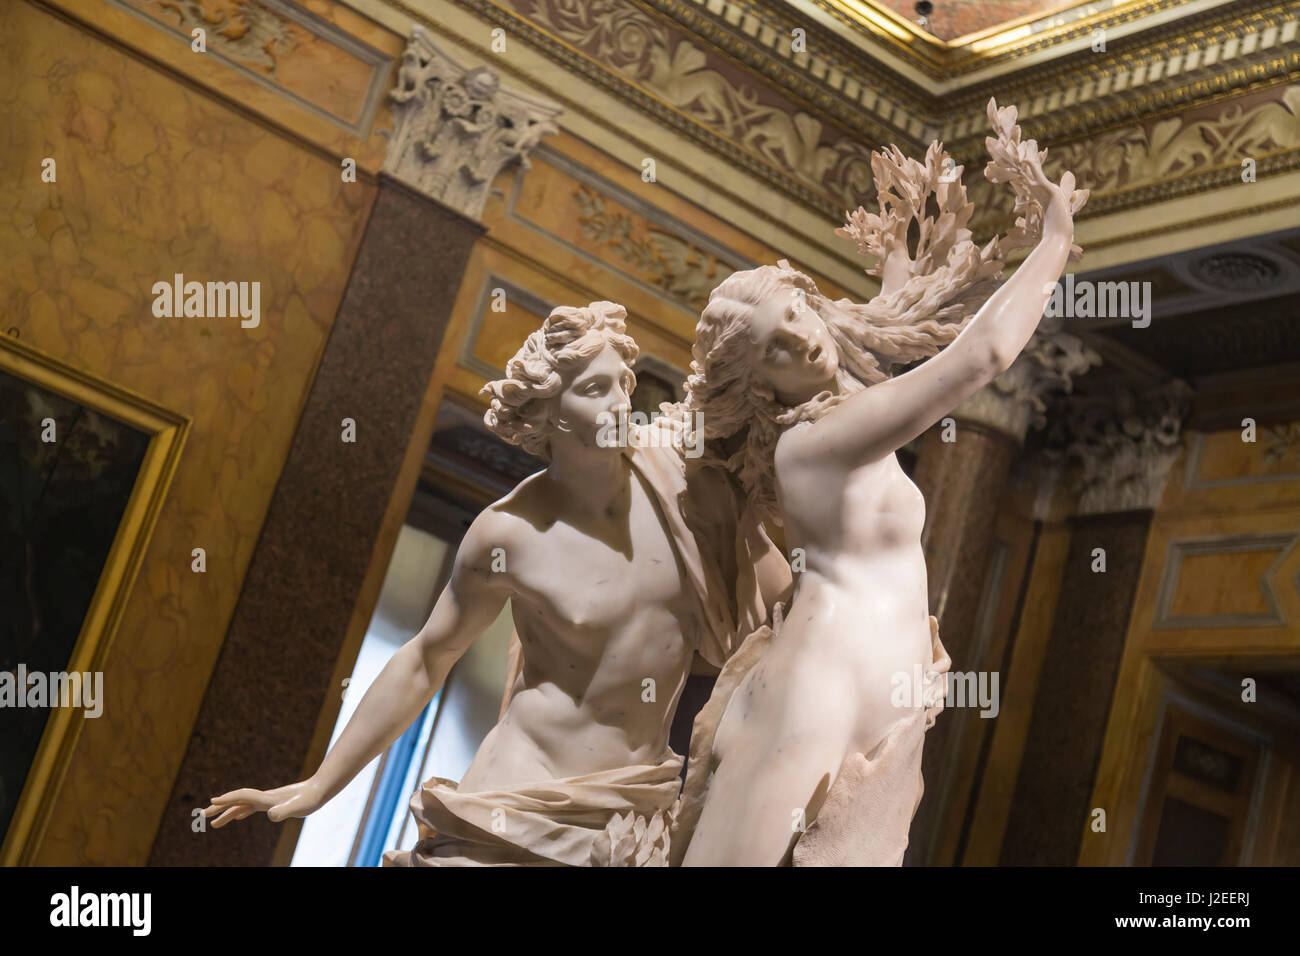 Italy, Rome. Sculpture of Apollo and Daphne, depicting the climax of their story in Ovid's Metamorphoses. The - Stock Image